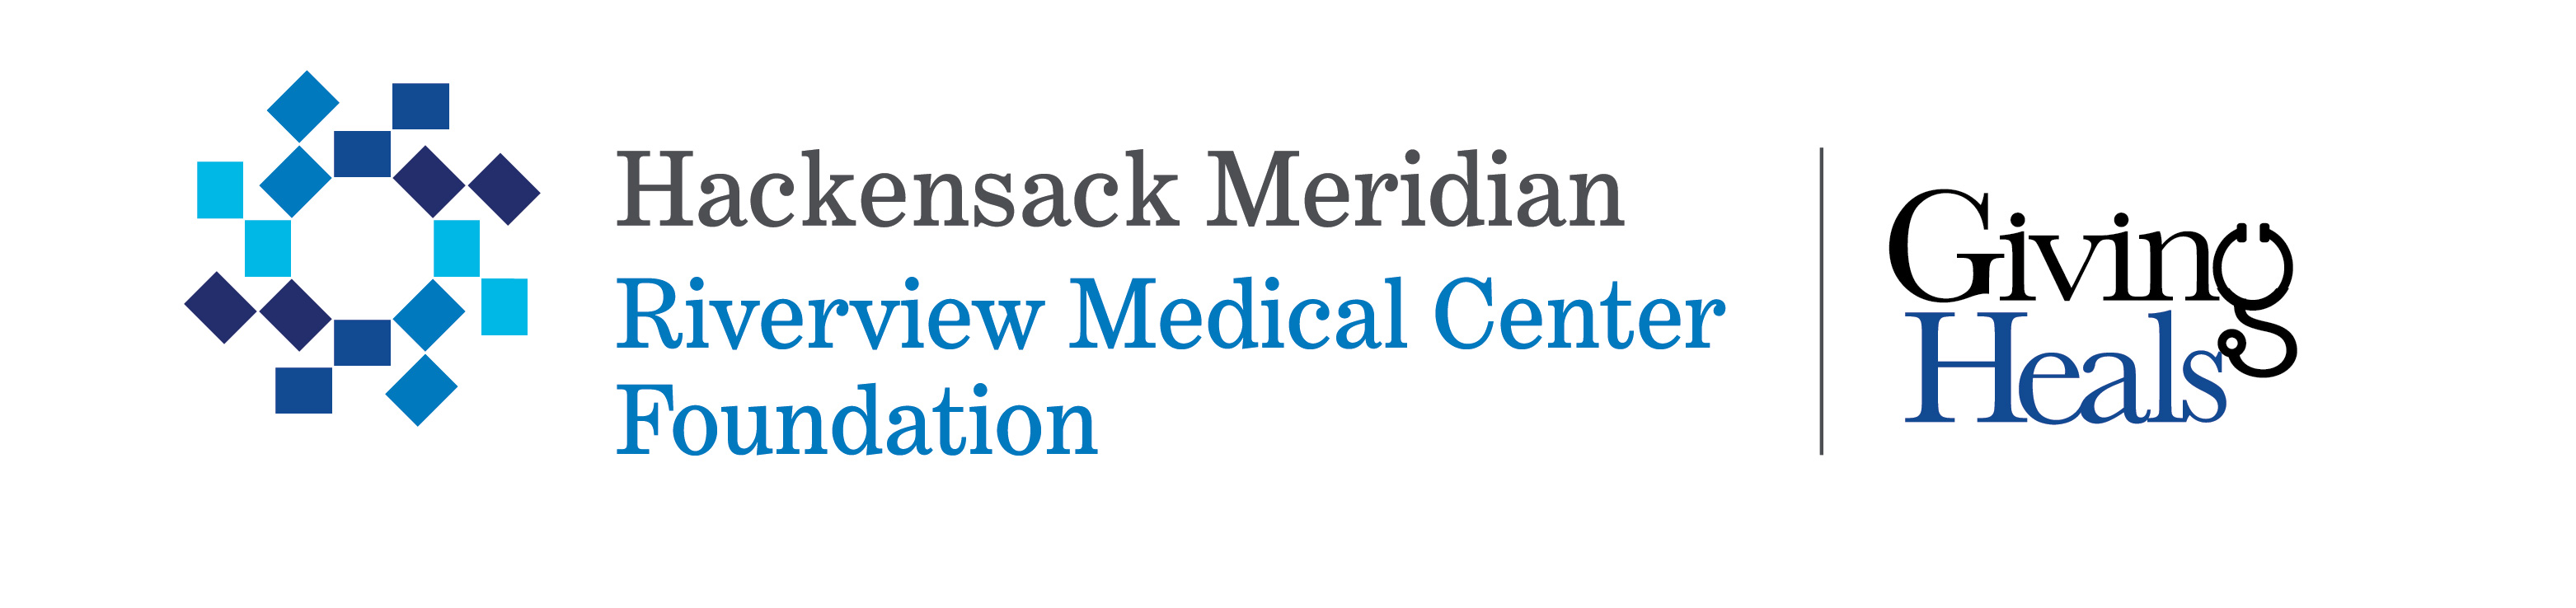 Hackensack Meridian - Riverview Medical Center Foundation